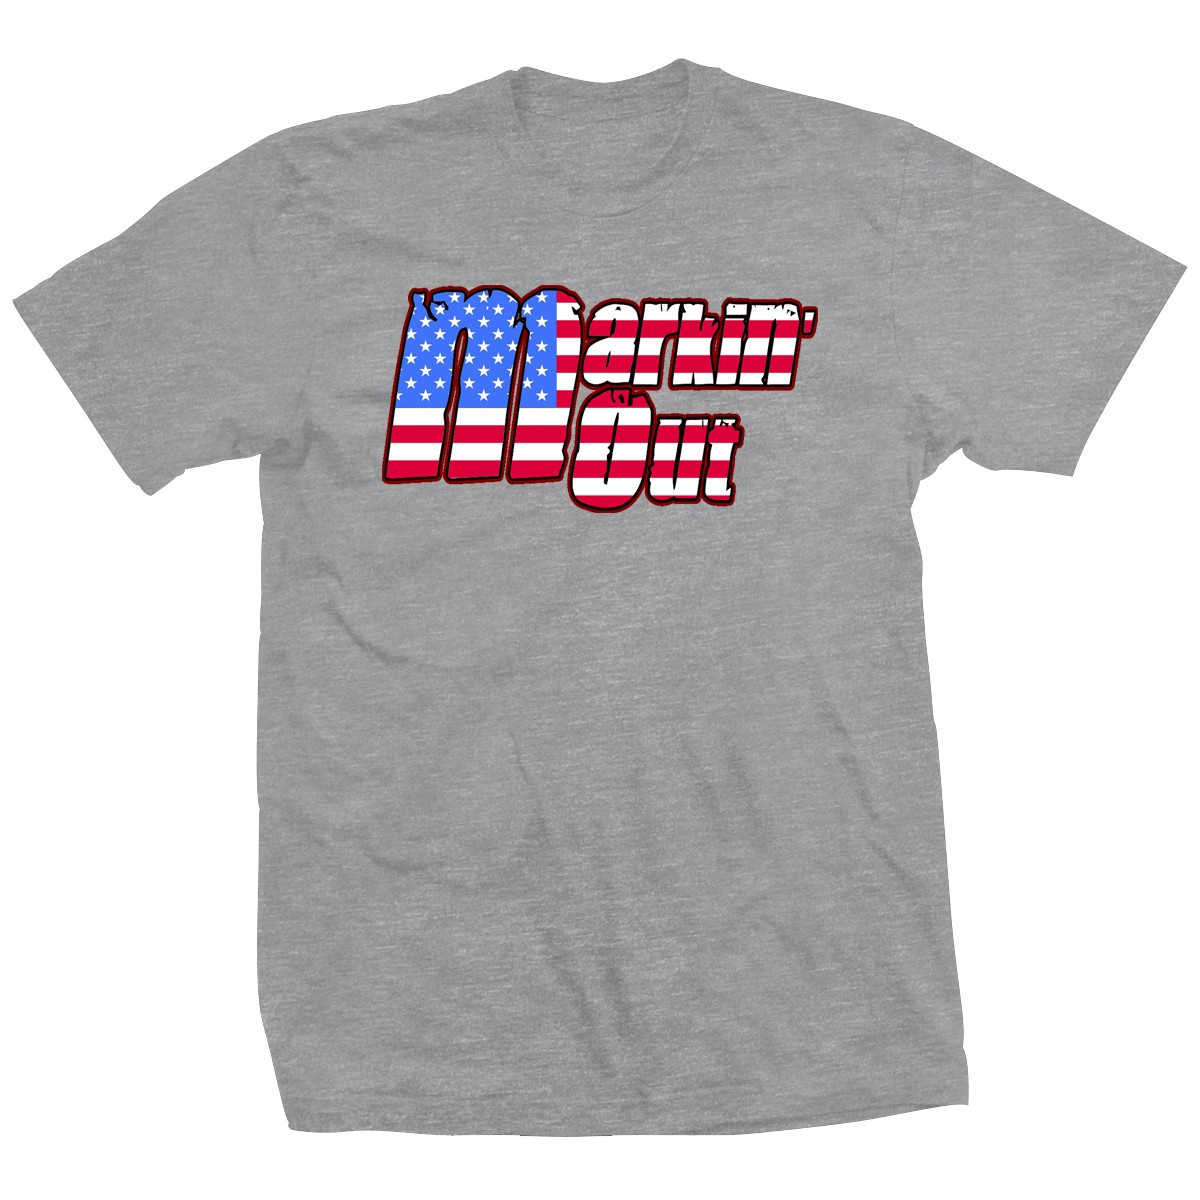 A Pro Wrestling Tees USA